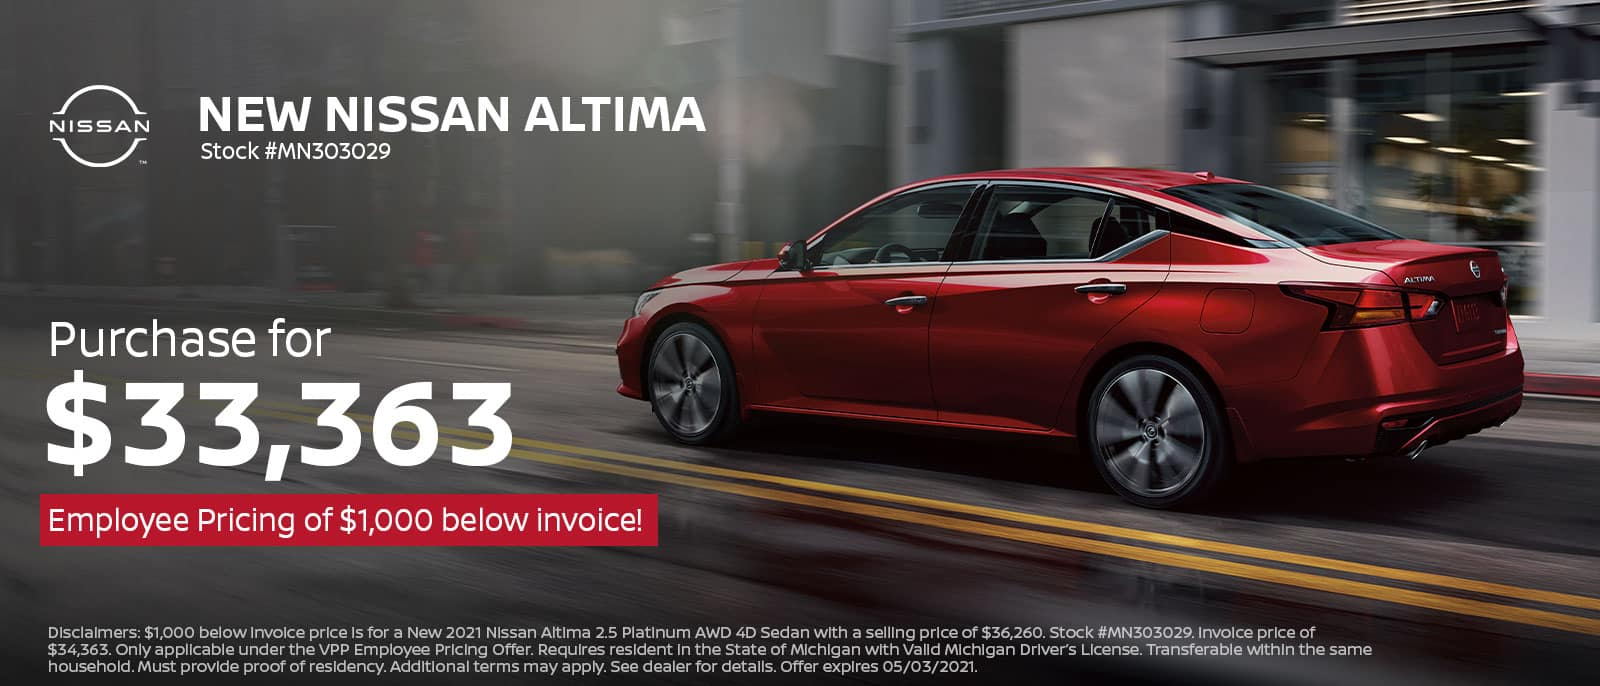 new-nissan-altima